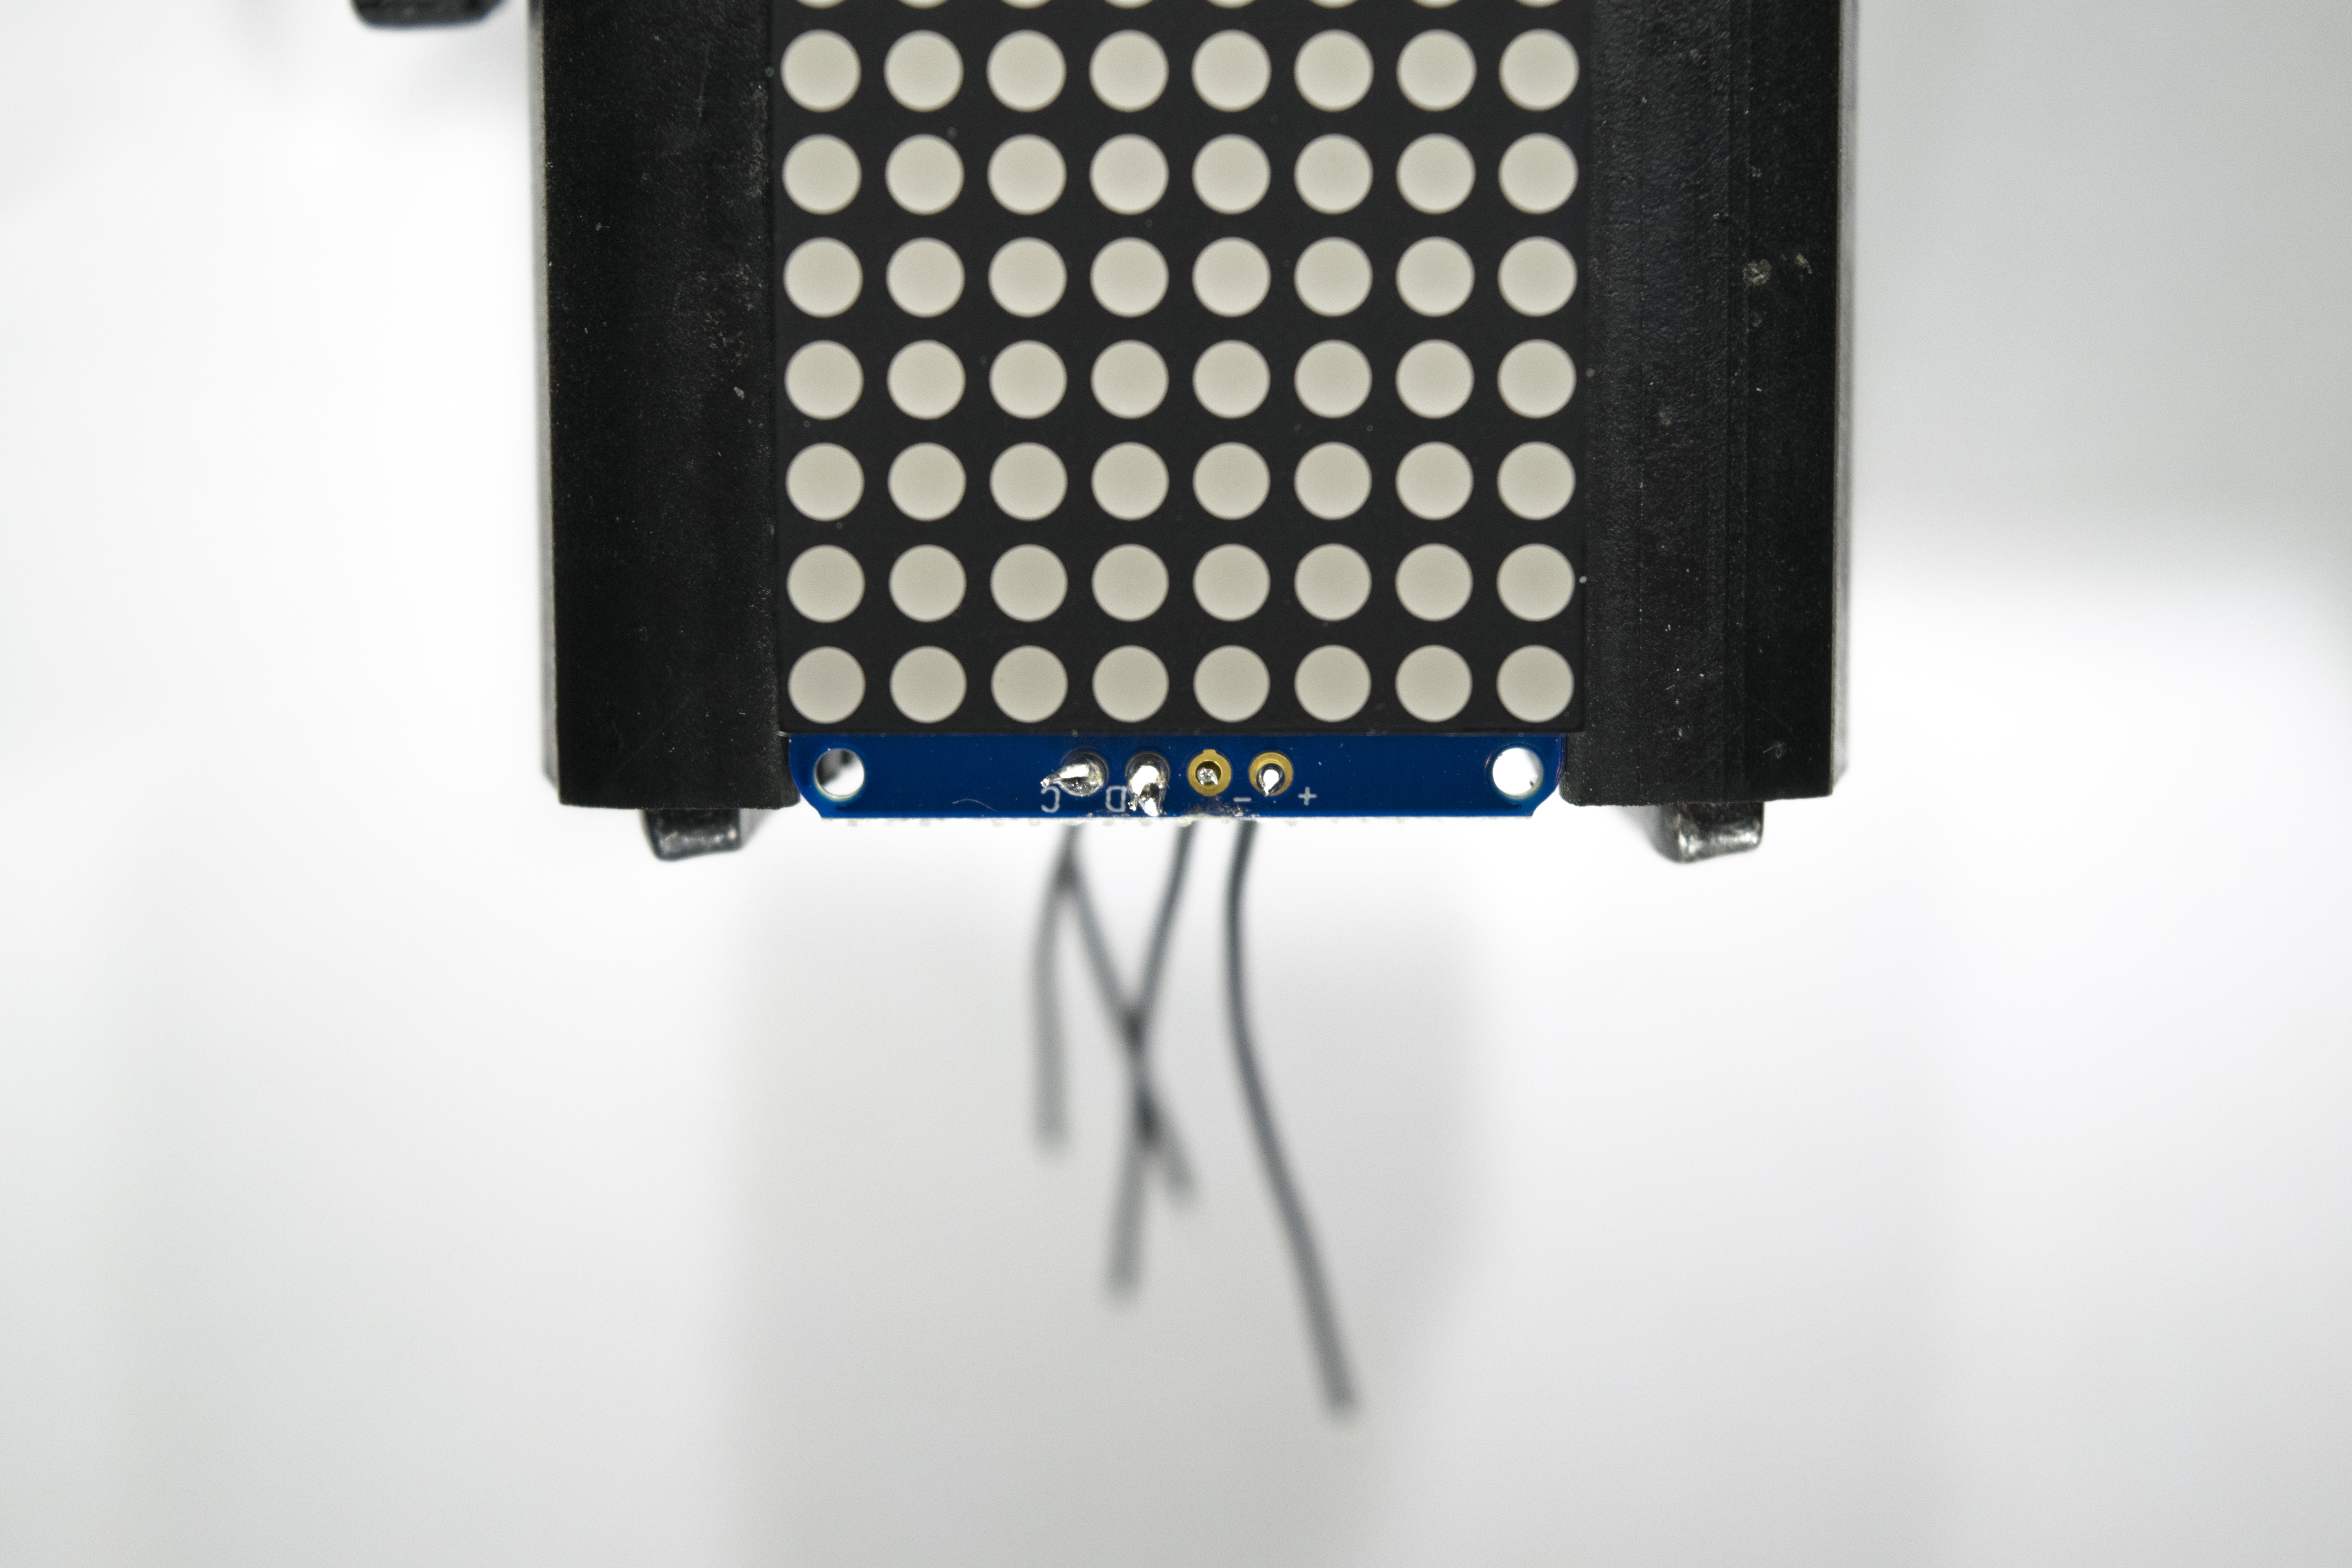 led_matrix__DSC0088.jpg